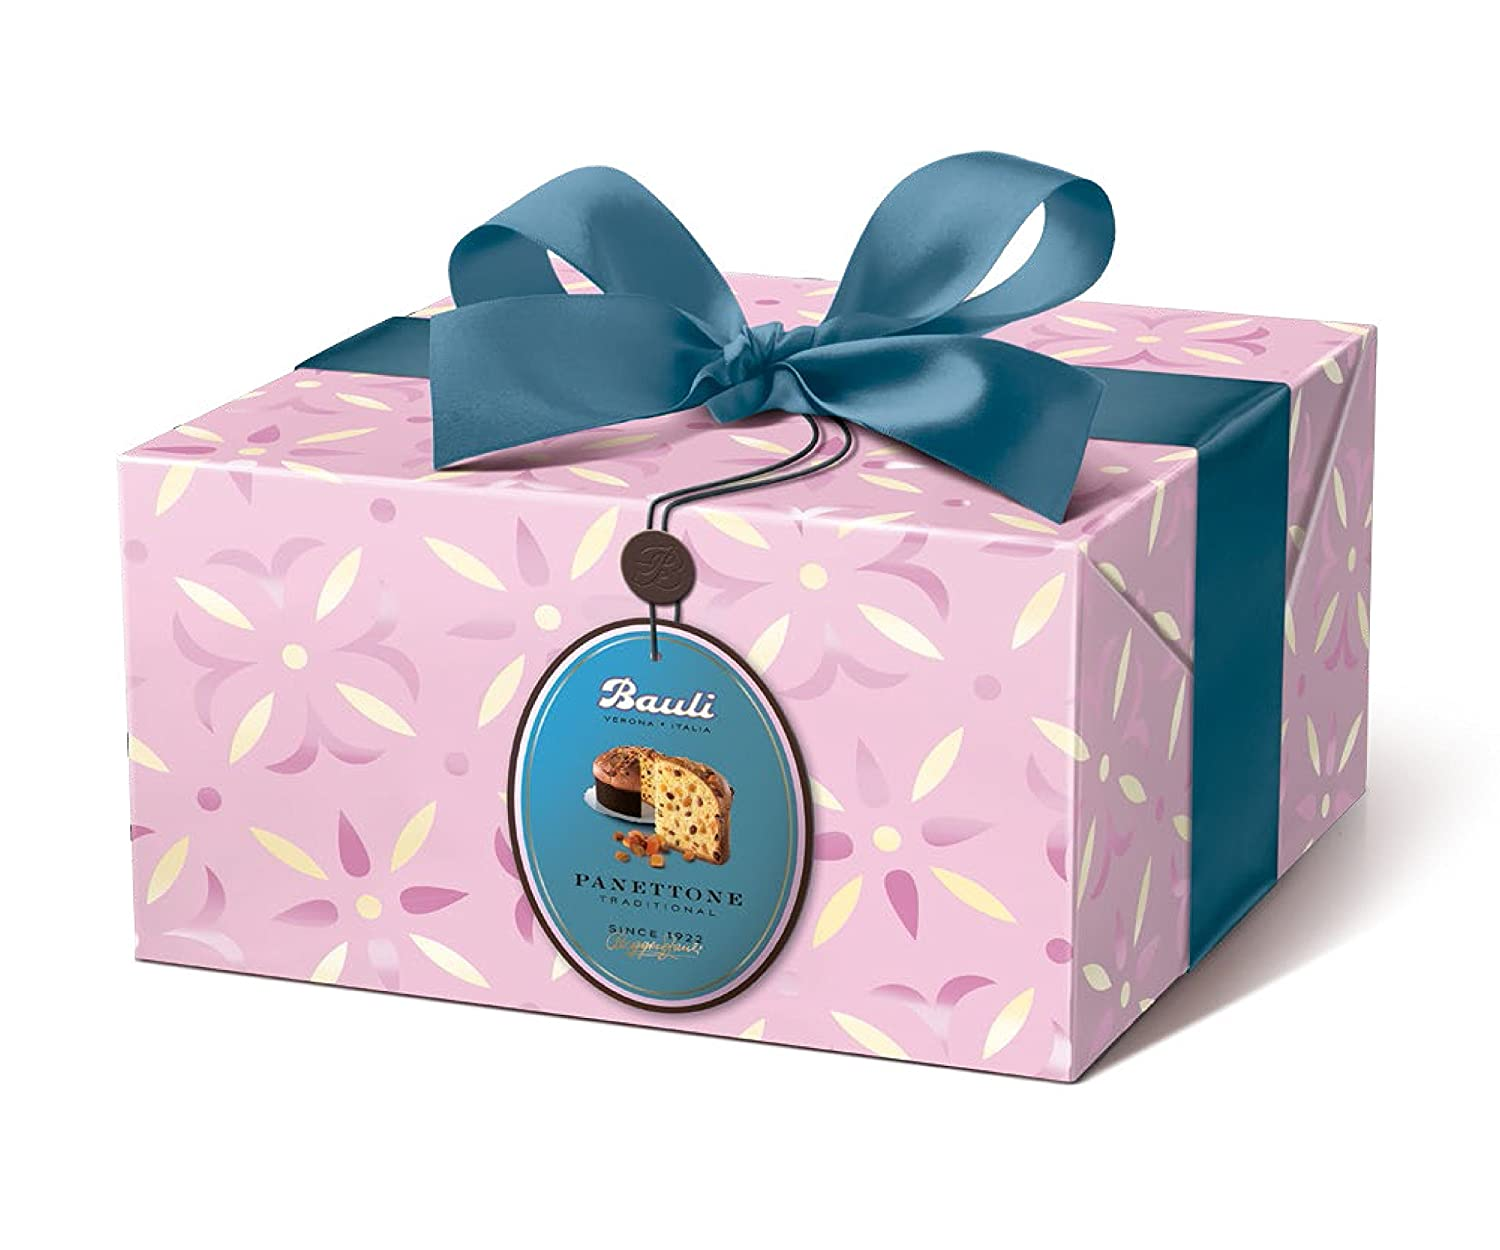 Bauli Panettone Traditional Hand Wrapped, 750 Gram: Amazon.com ...